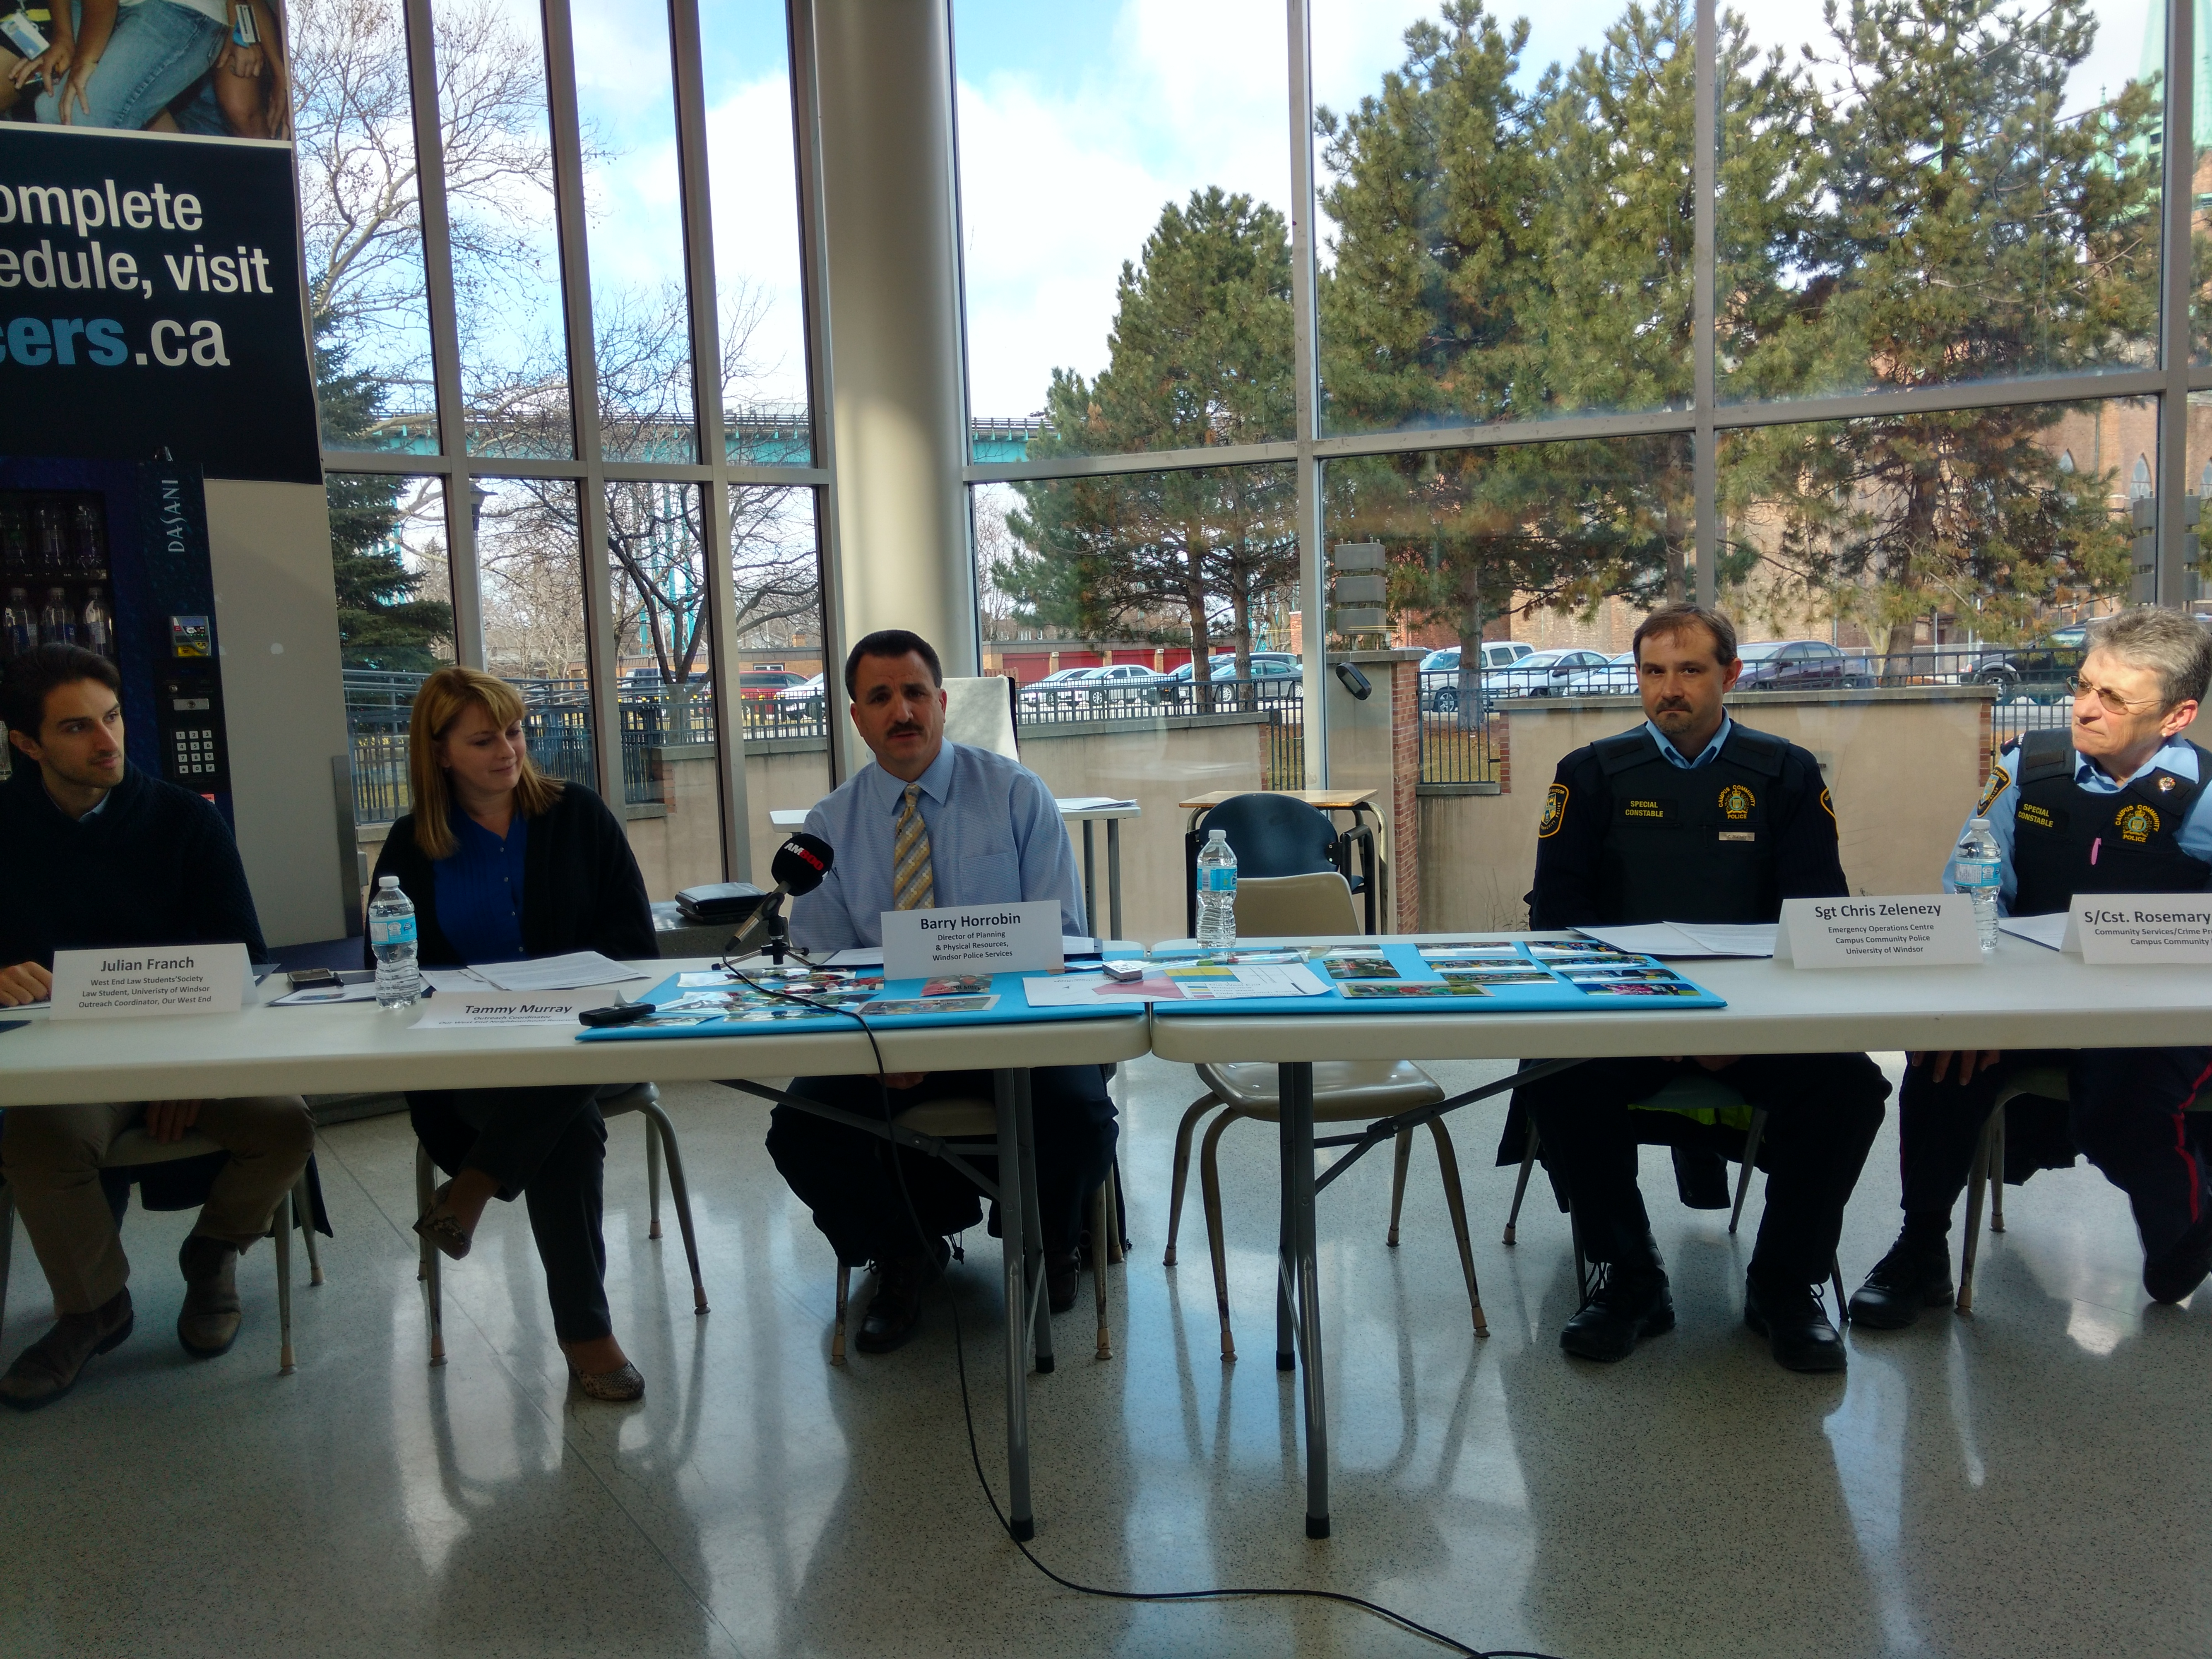 From left, Julian Franch of the University of Windsor, Tammy Murray of Our West End, Barry Horrobin, Windsor Police director of planning, Sergeant Chris Zelezney and Constable Rosemary Briscoe participate in a press conference highlighting a partnership between police and Our West End at the UW CAW Student Centre in Windsor, Feb 29 (Photo by Mark Brown)